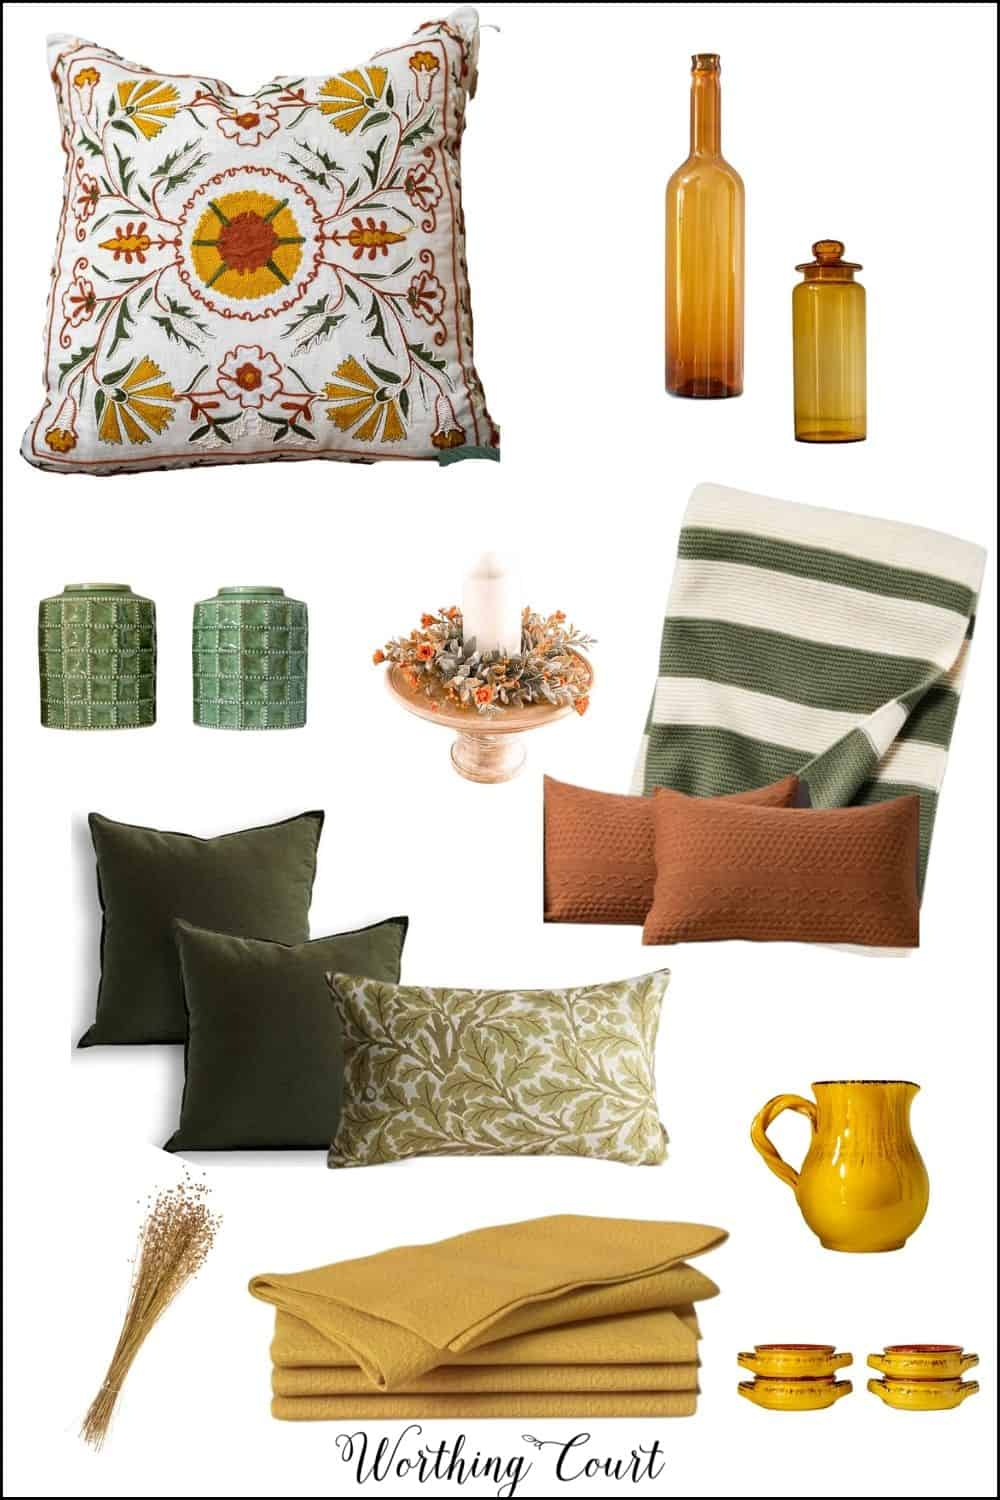 image of mood board with fall decor